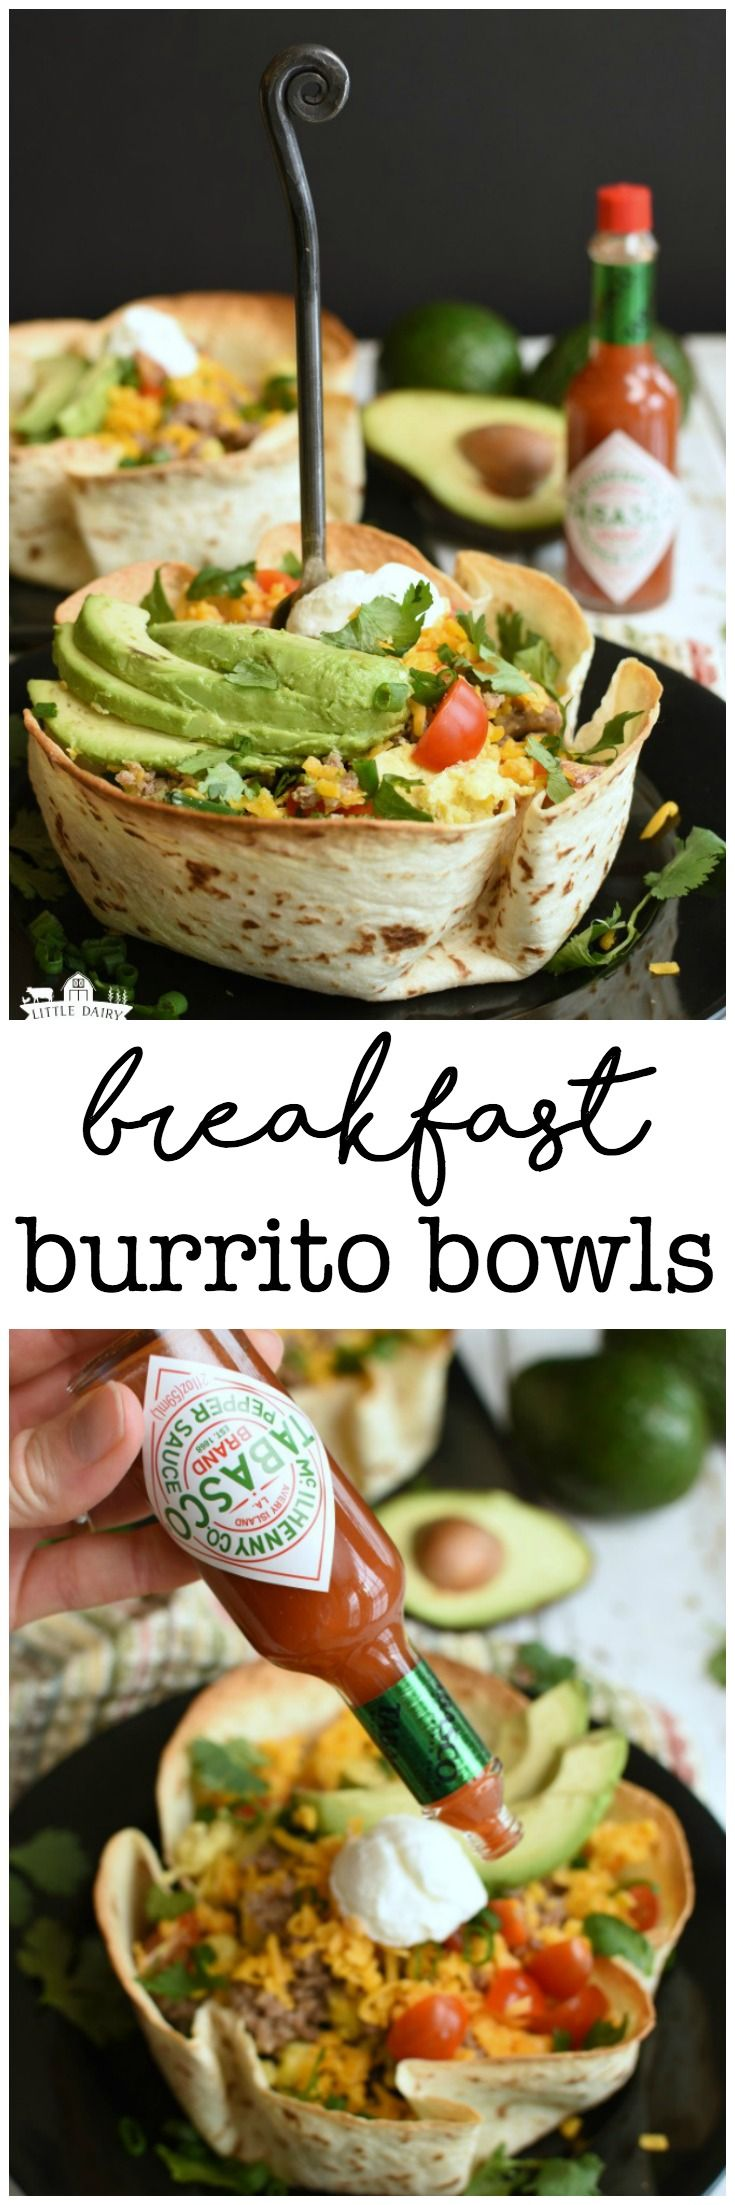 Breakfast Burrito Bowls - pile them high with your favorite toppings! #AD #GuacWorld #FlavorYourWorld @AvosFromMexico @Tabasco http://bit.ly/2p8H3ky